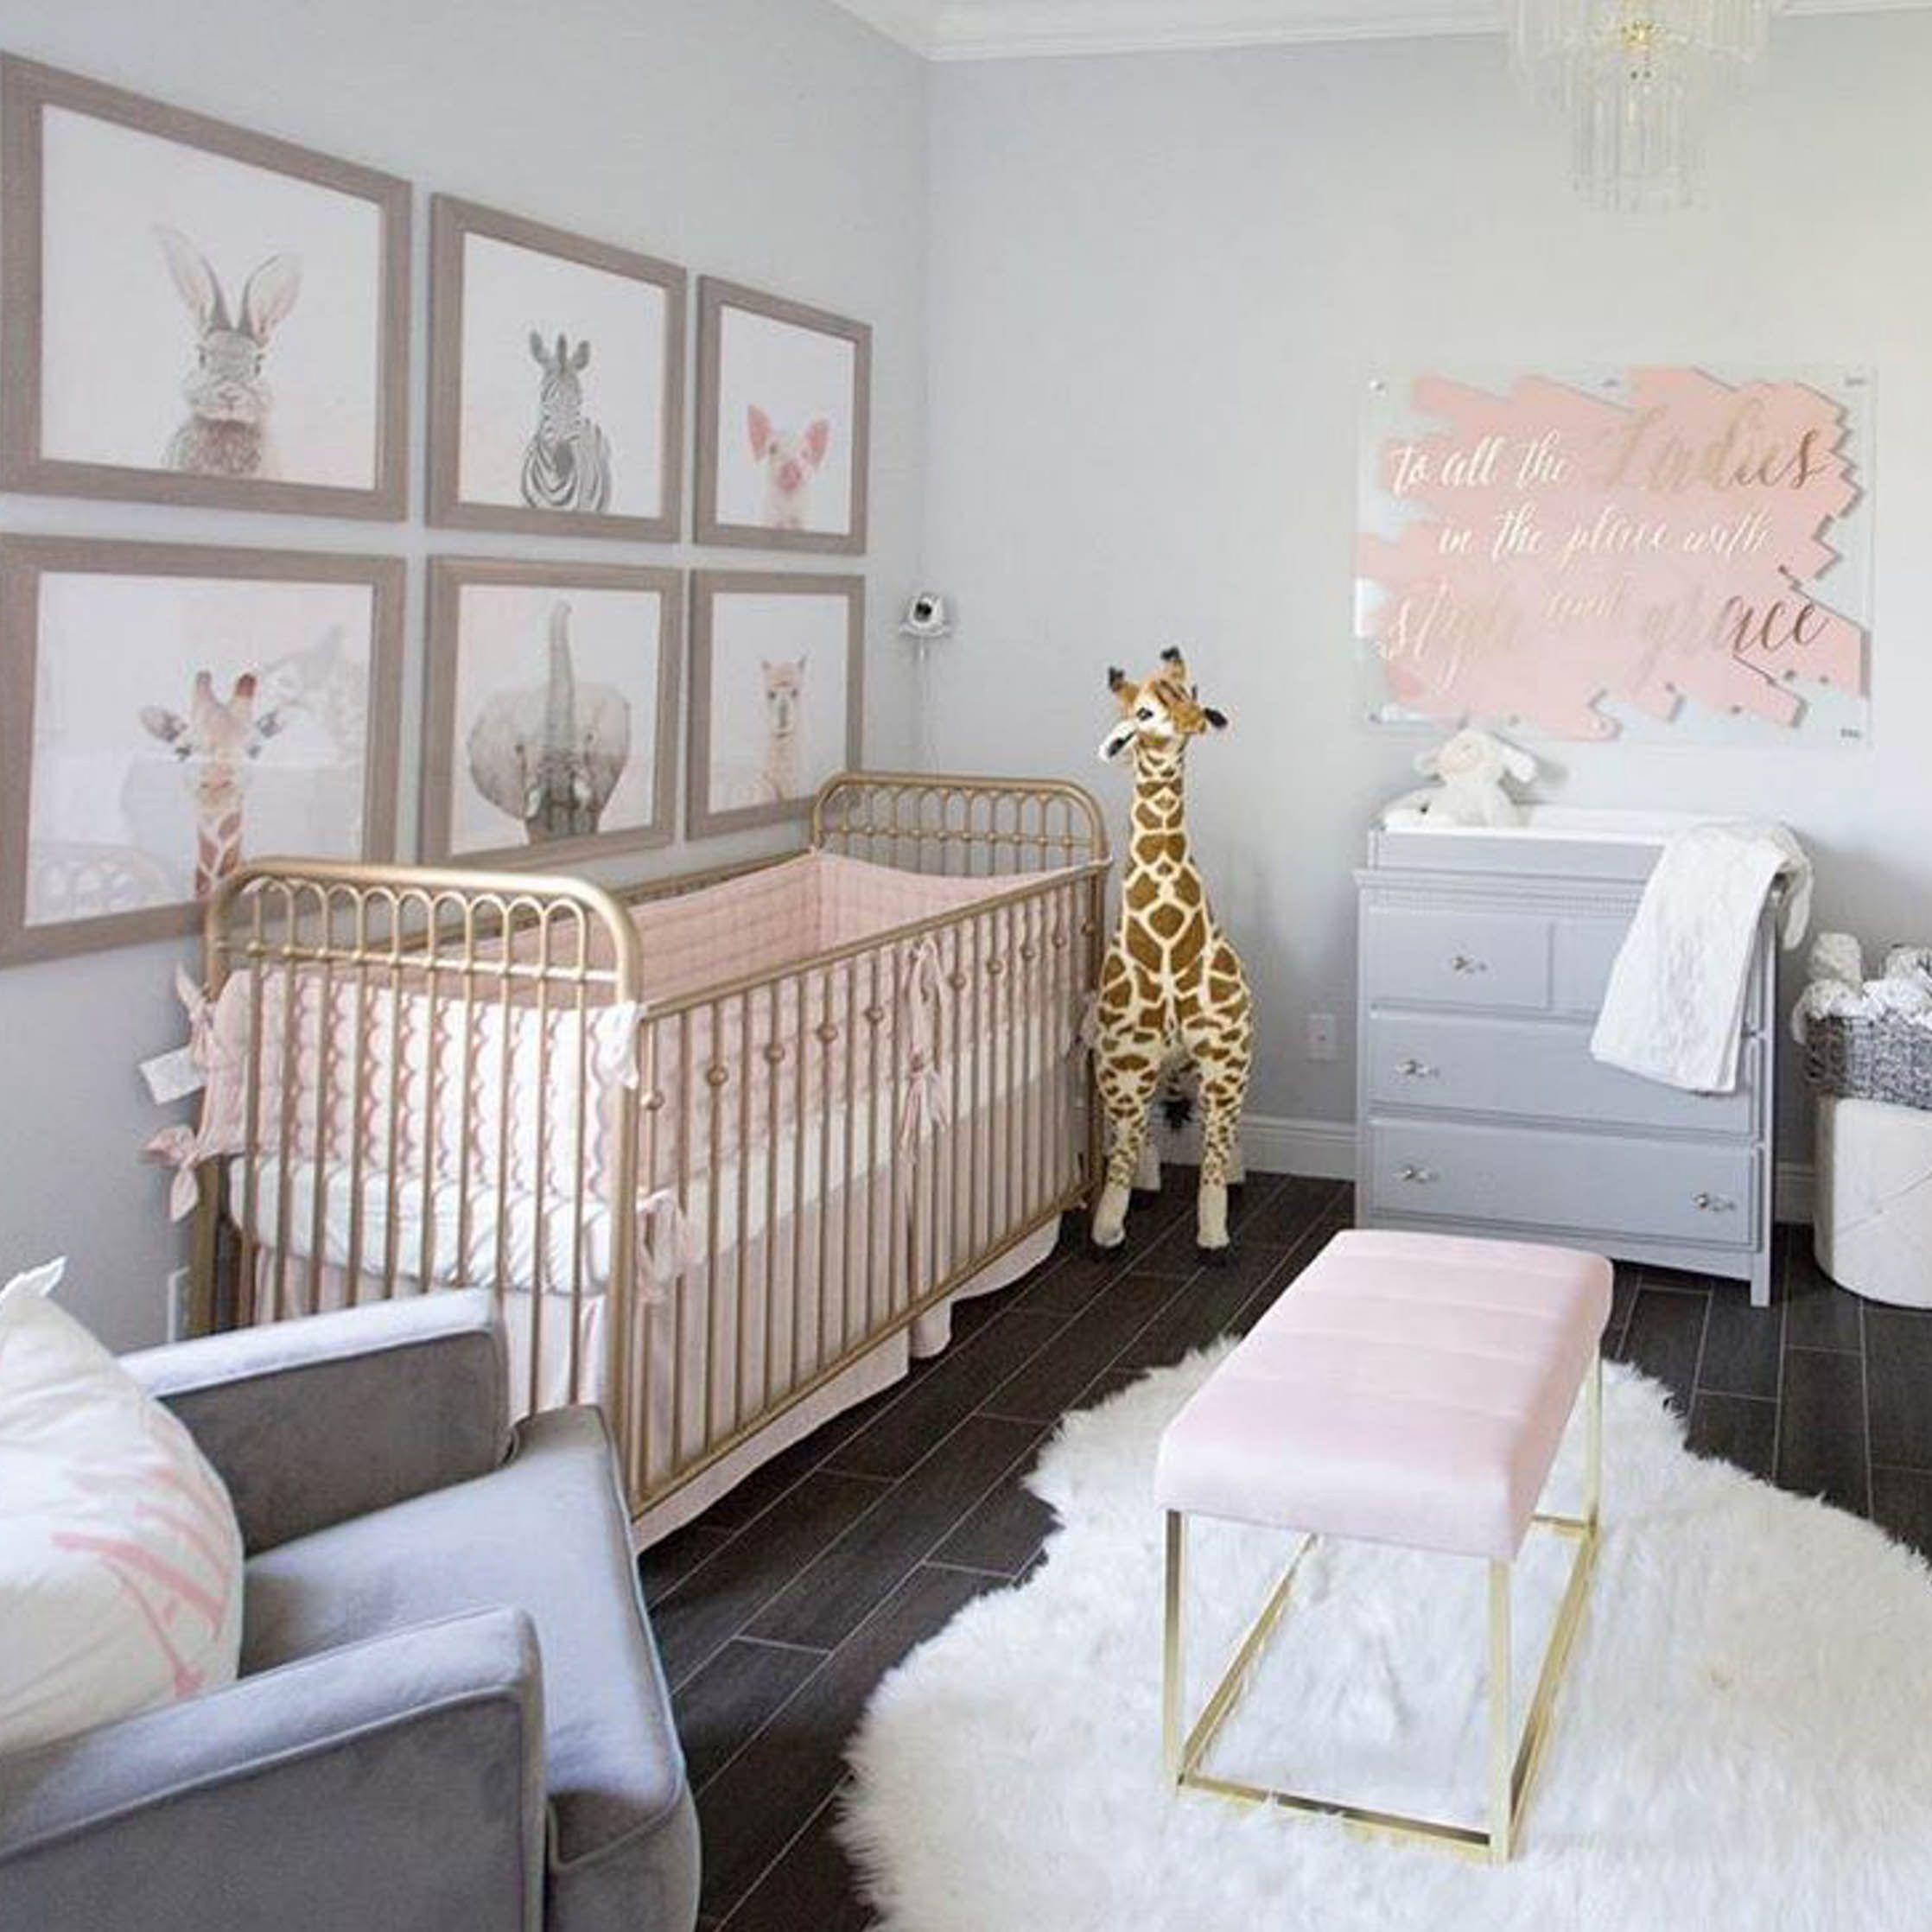 30 Most Popular And Cute Baby Nursery Room Ideas for Girls ...